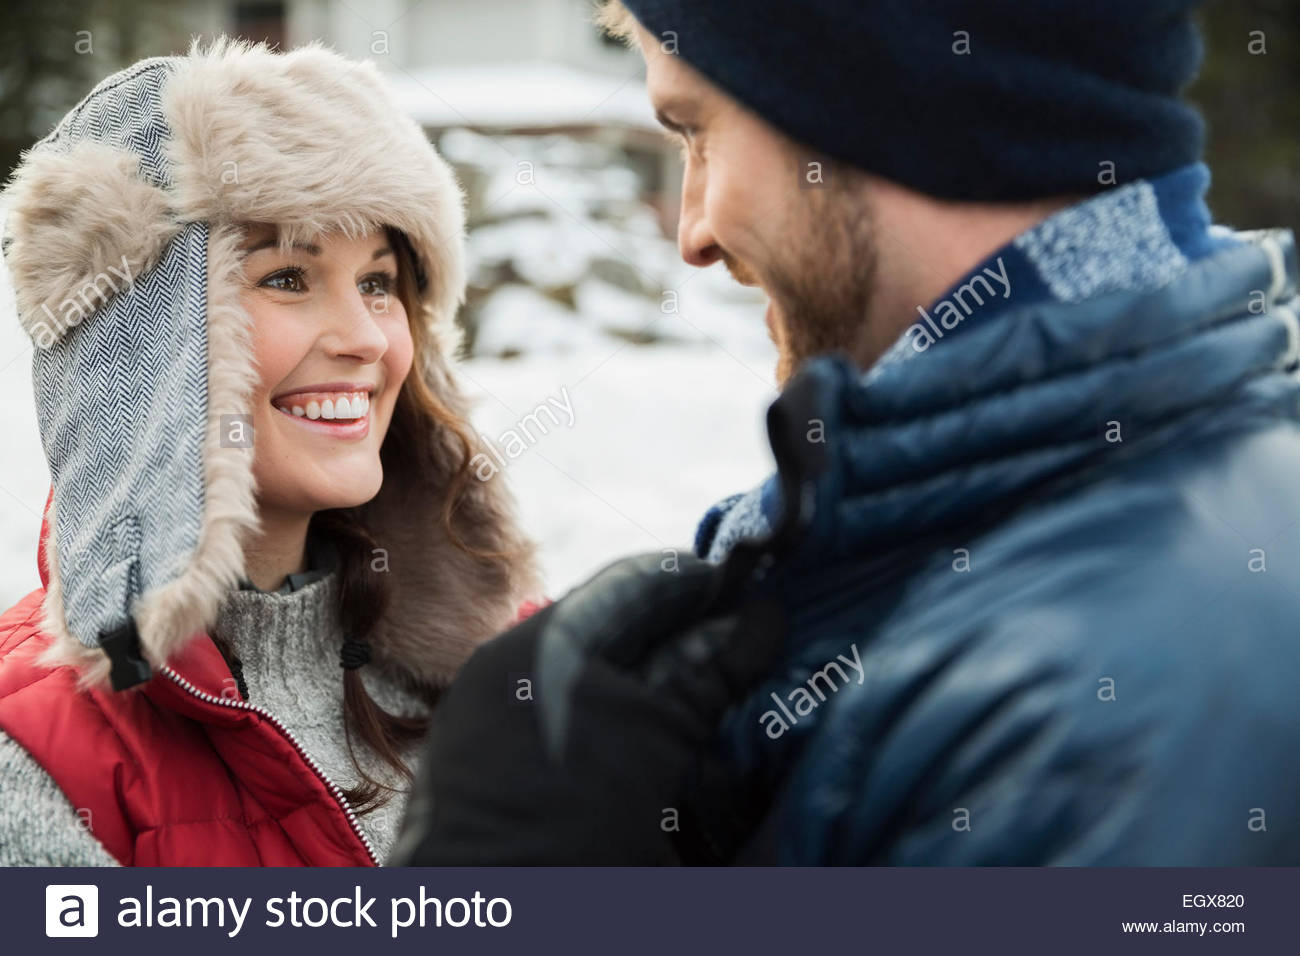 Couple in warm clothing smiling face to face - Stock Image